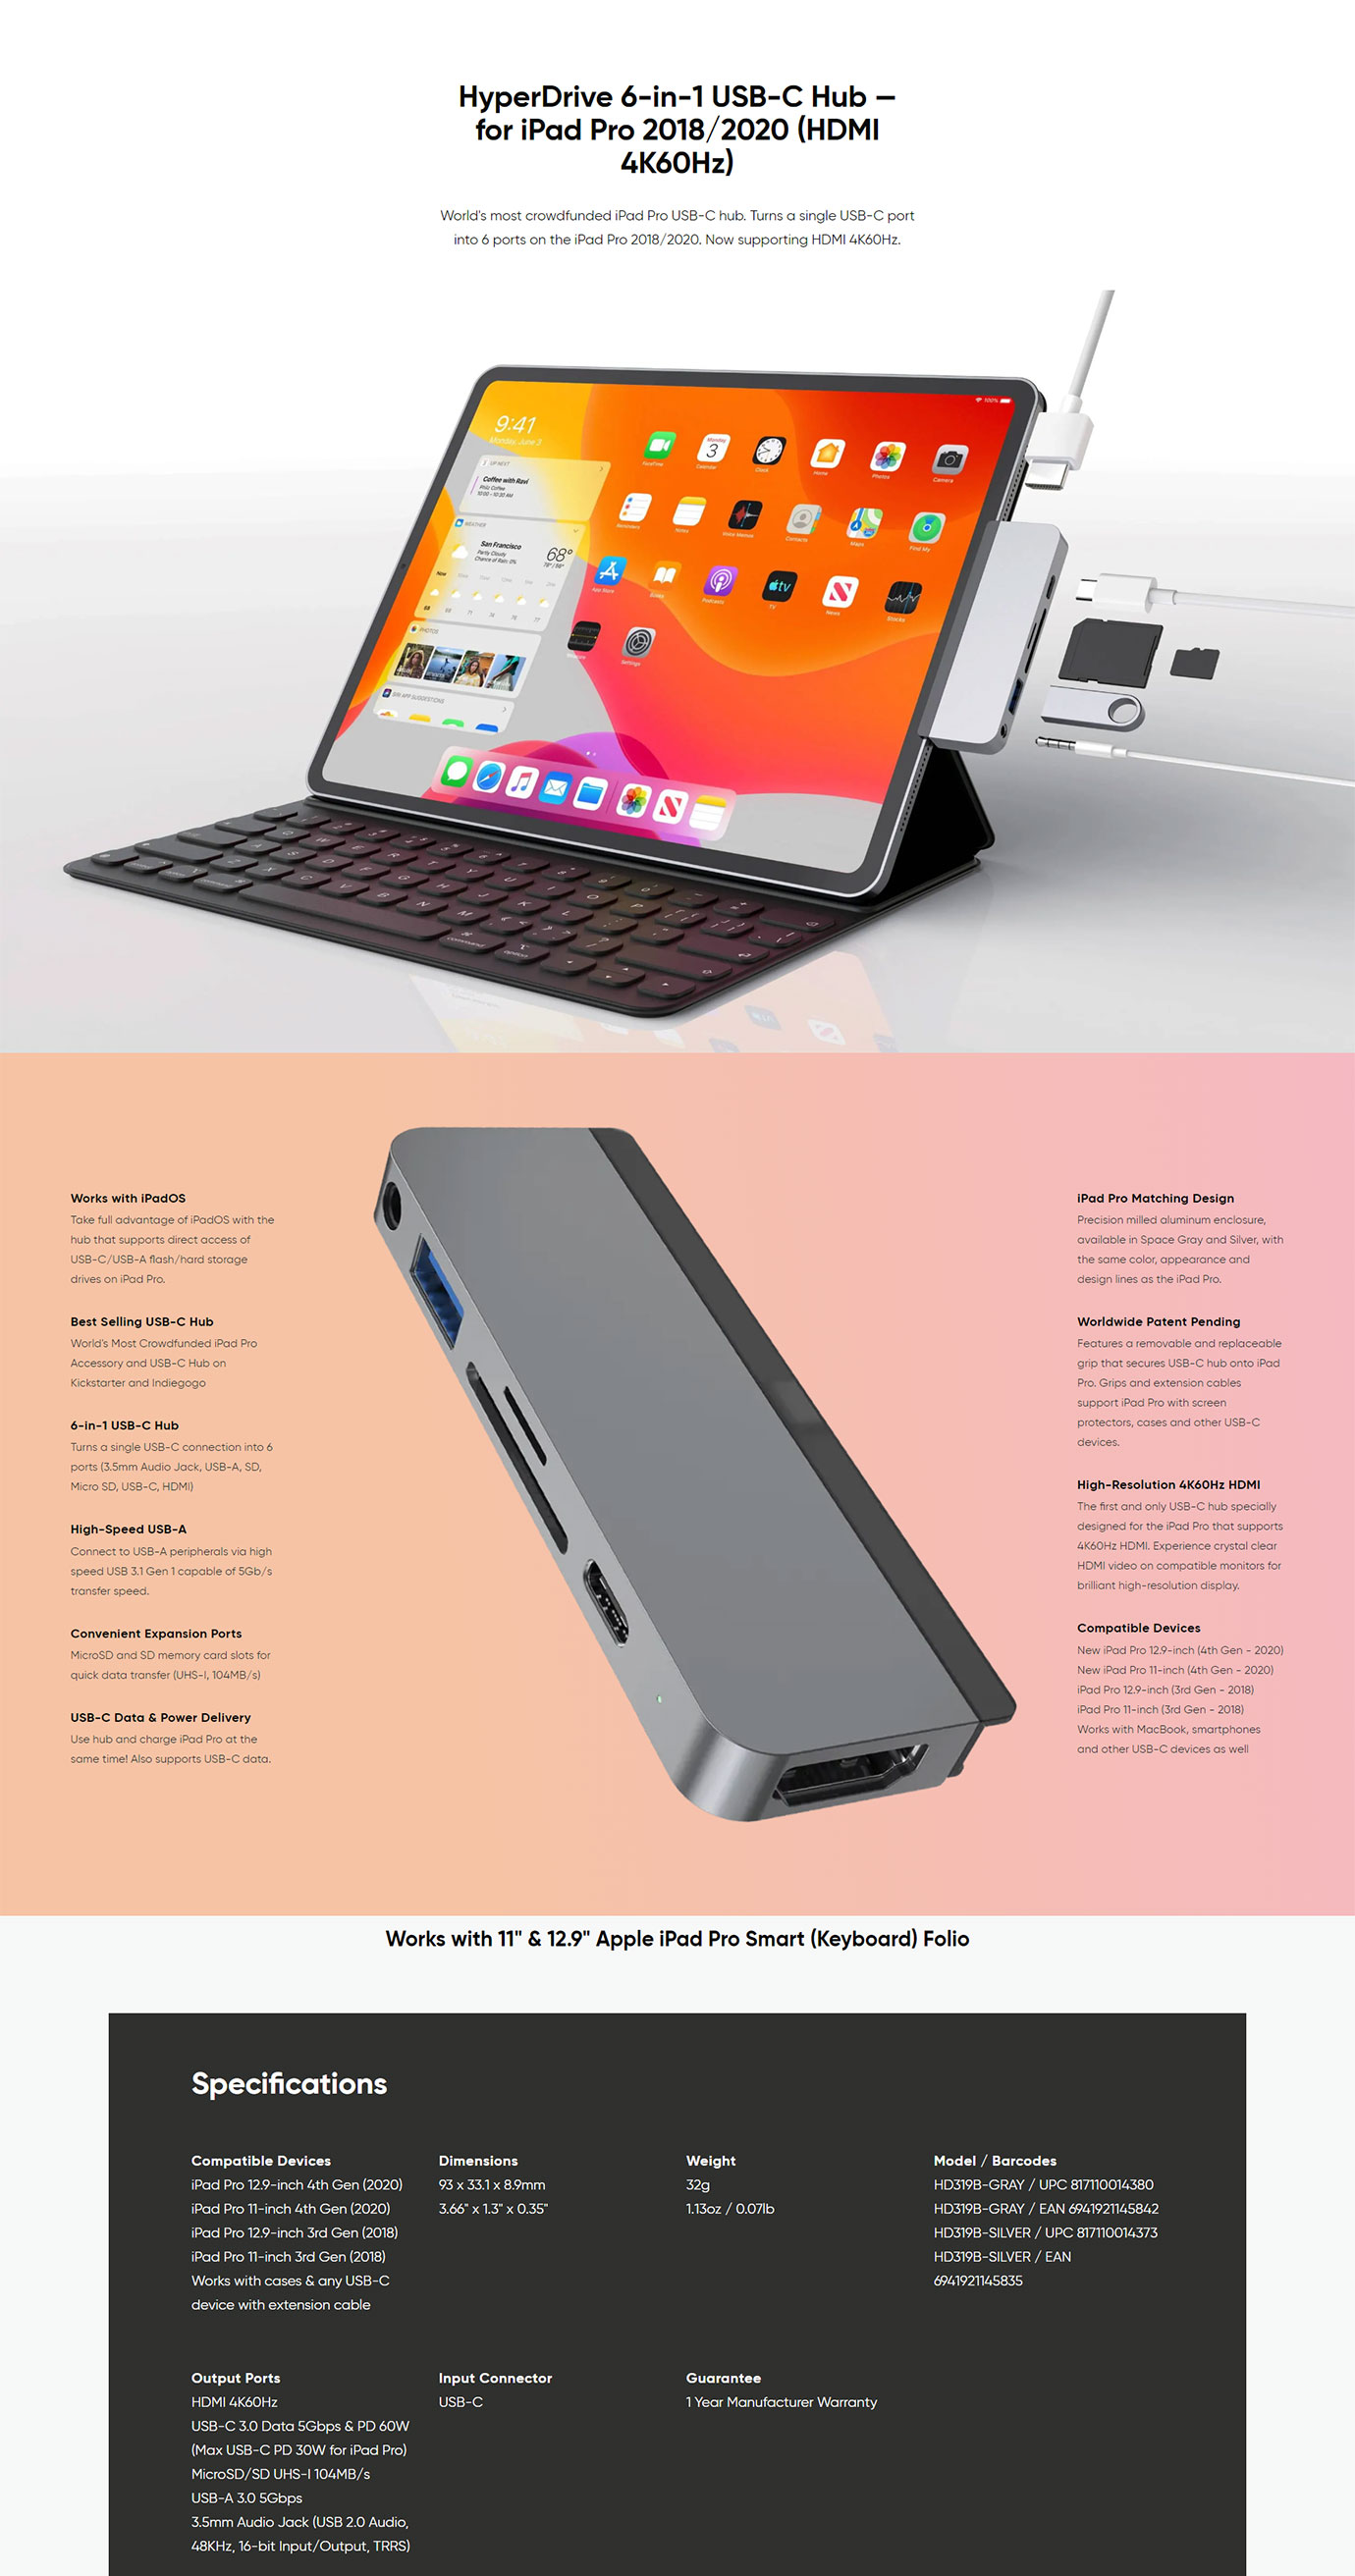 HyperDrive 6-in-1 Hub for iPad Pro